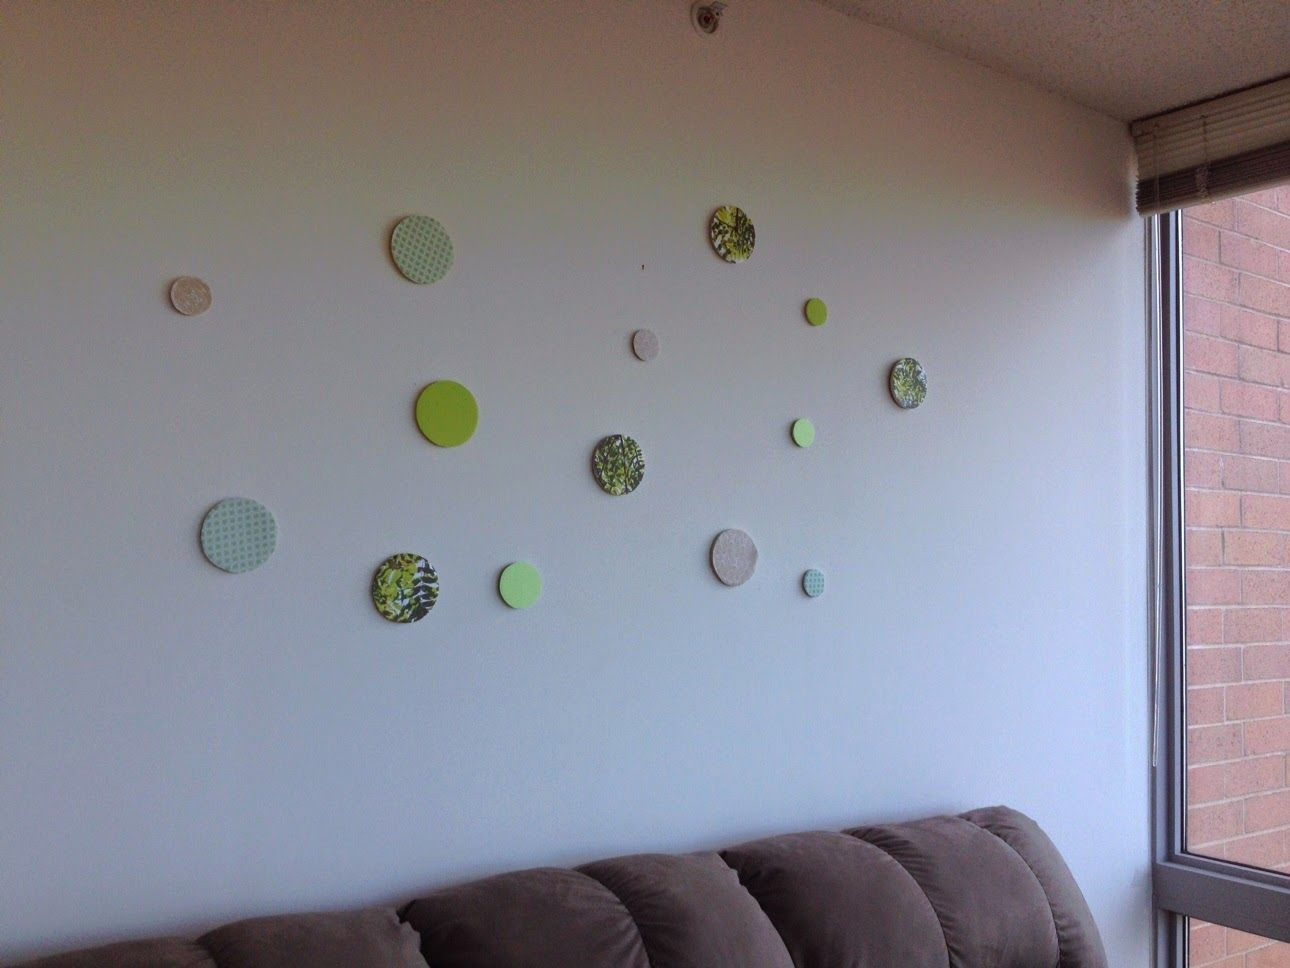 Scrapbook paper cut into circles and glued onto candle tops. Makes for a cute wall accent piece!